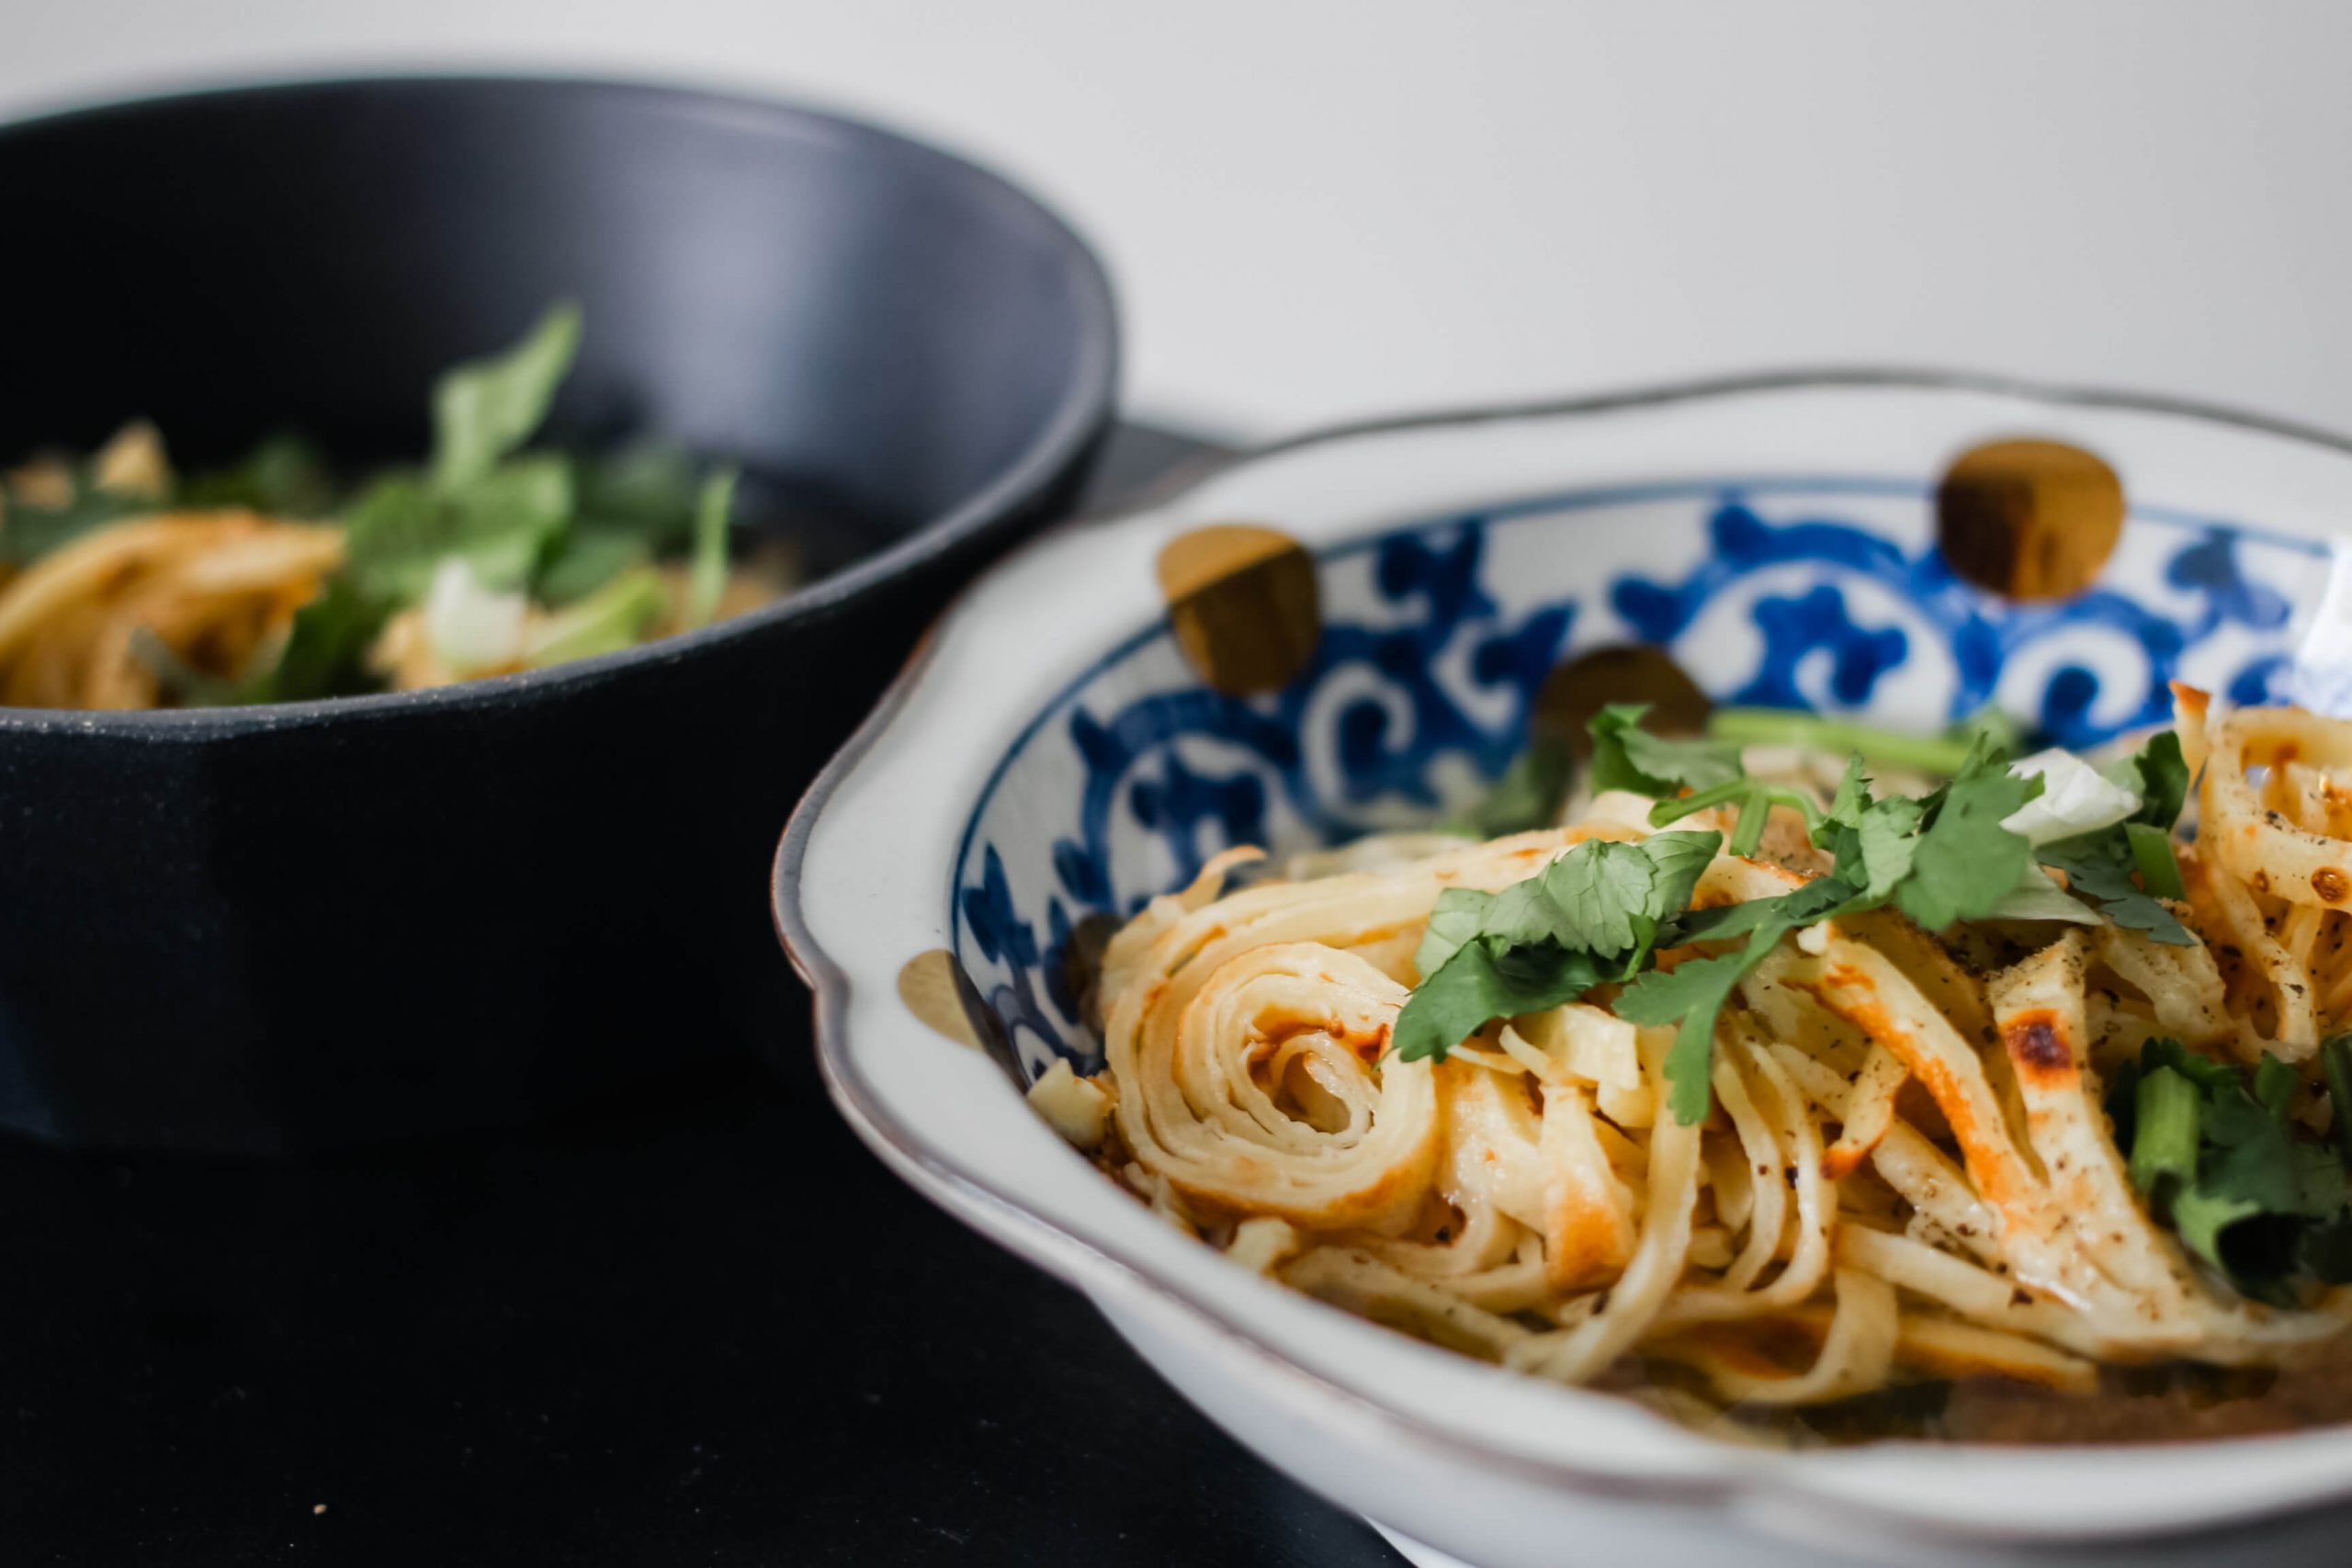 A bowl of crepe noodles in broth.